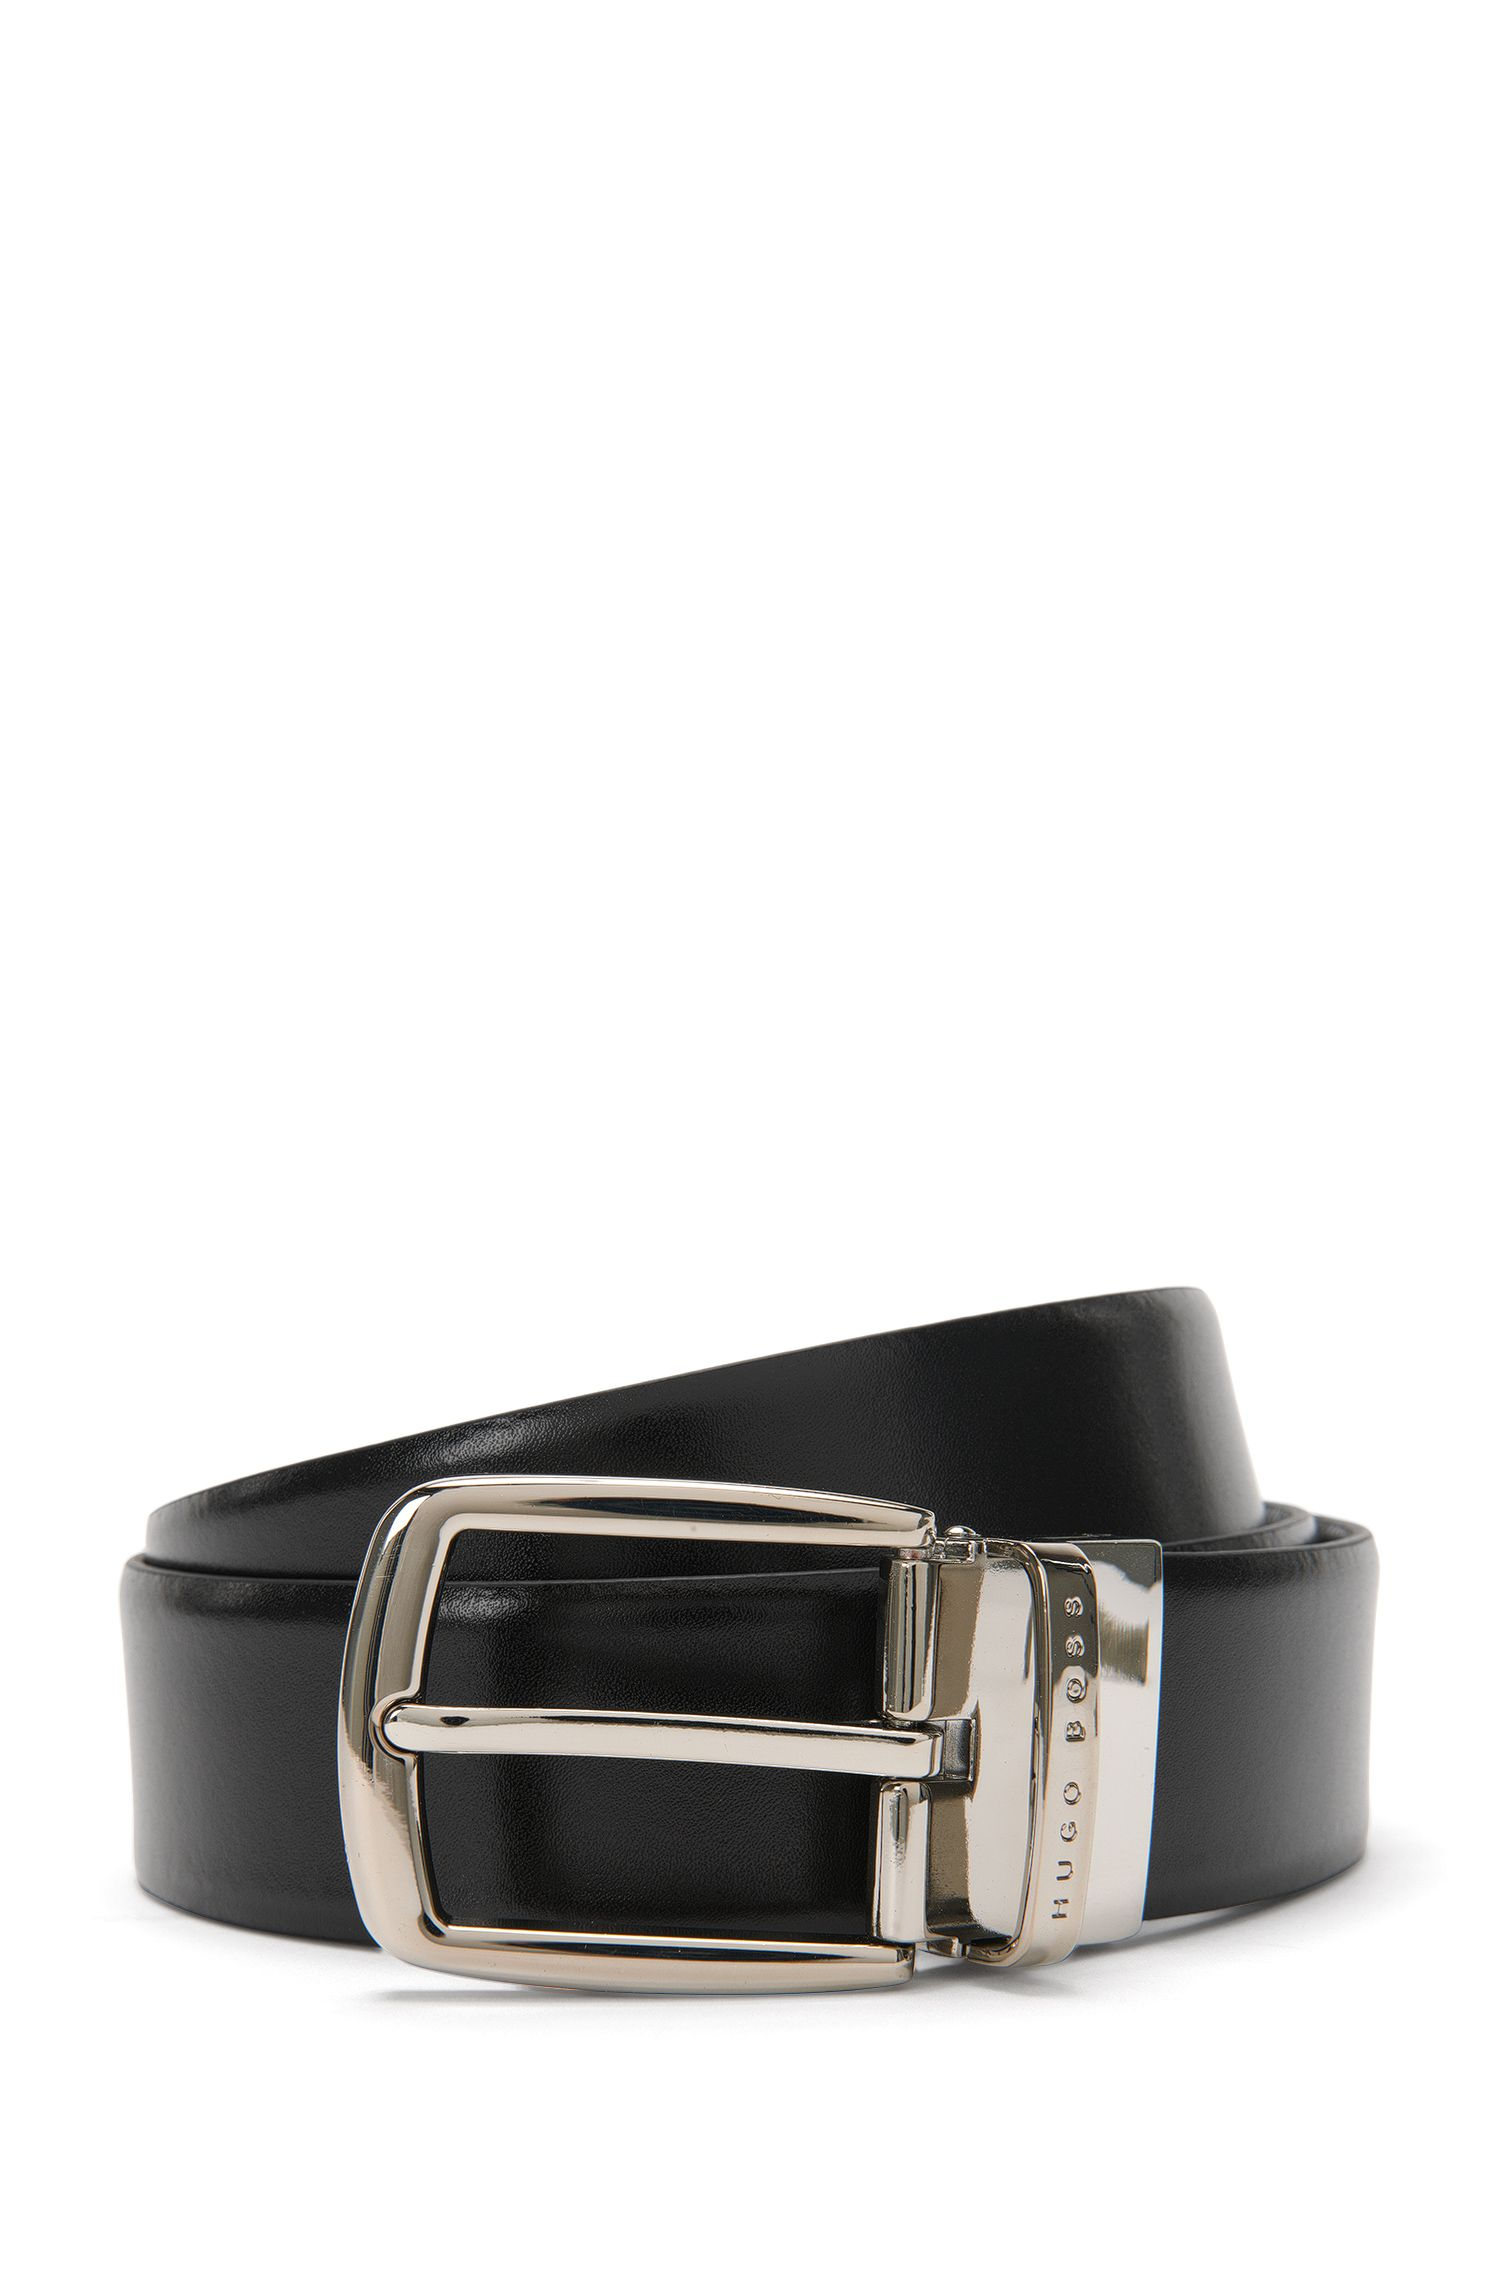 'Ofer Or35 Ps' | Leather Handmade Reversible Belt